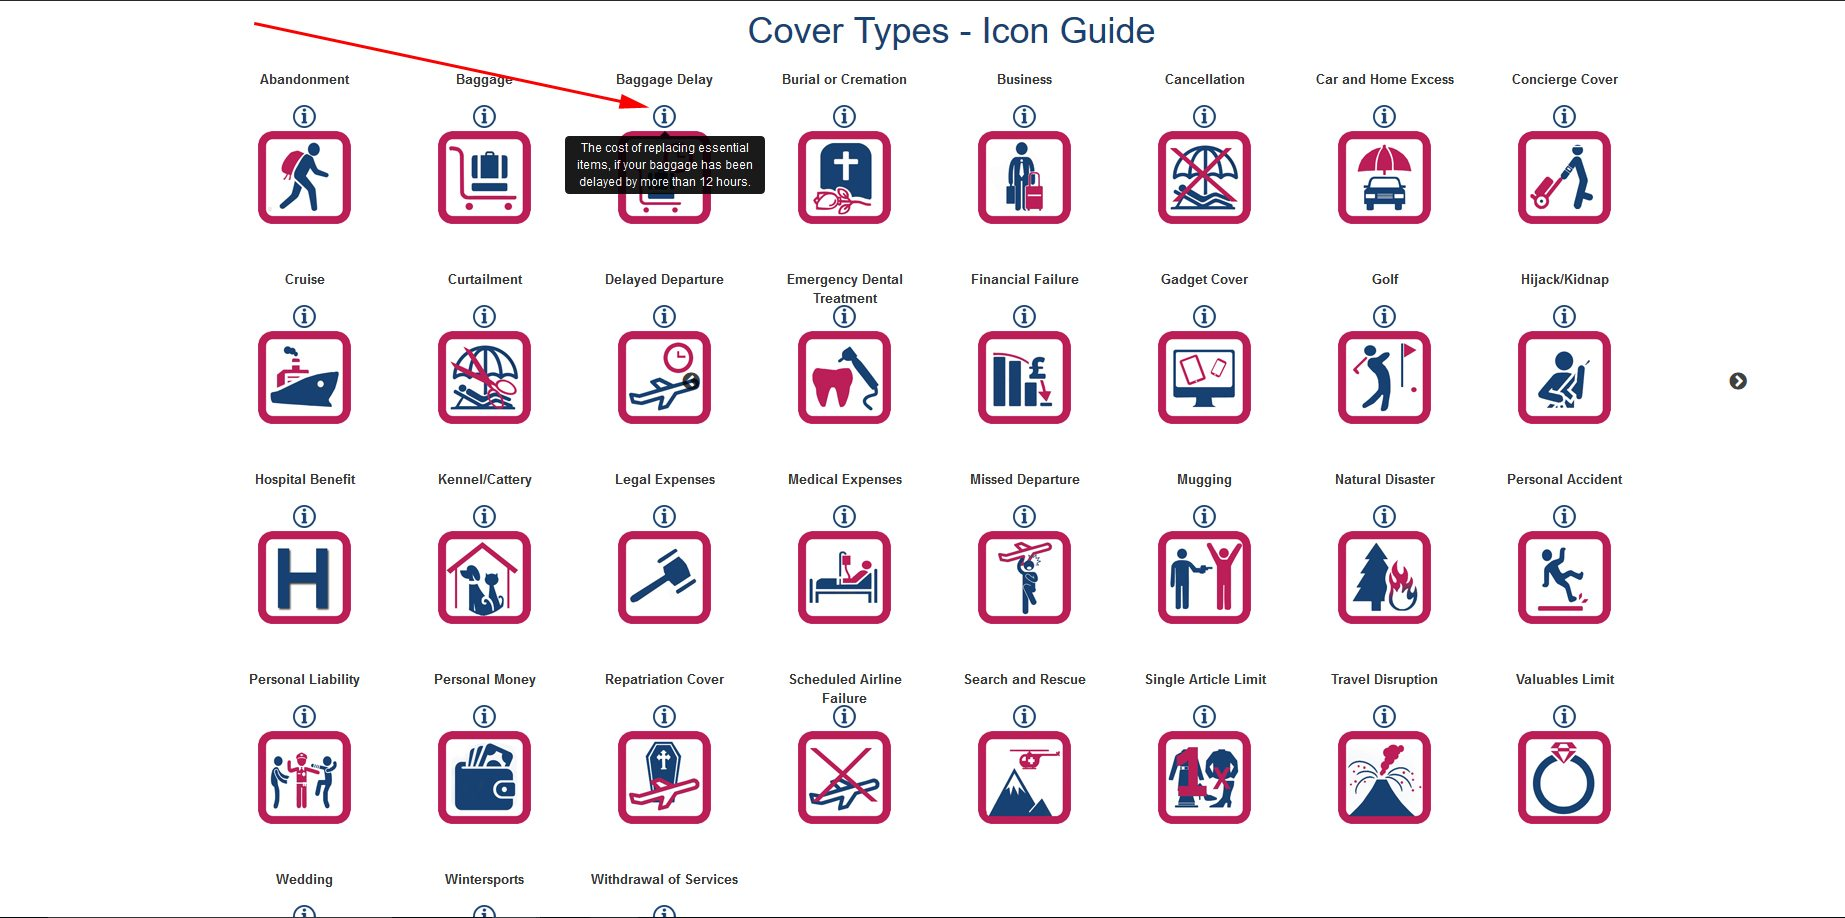 Cover Types Icon Guide